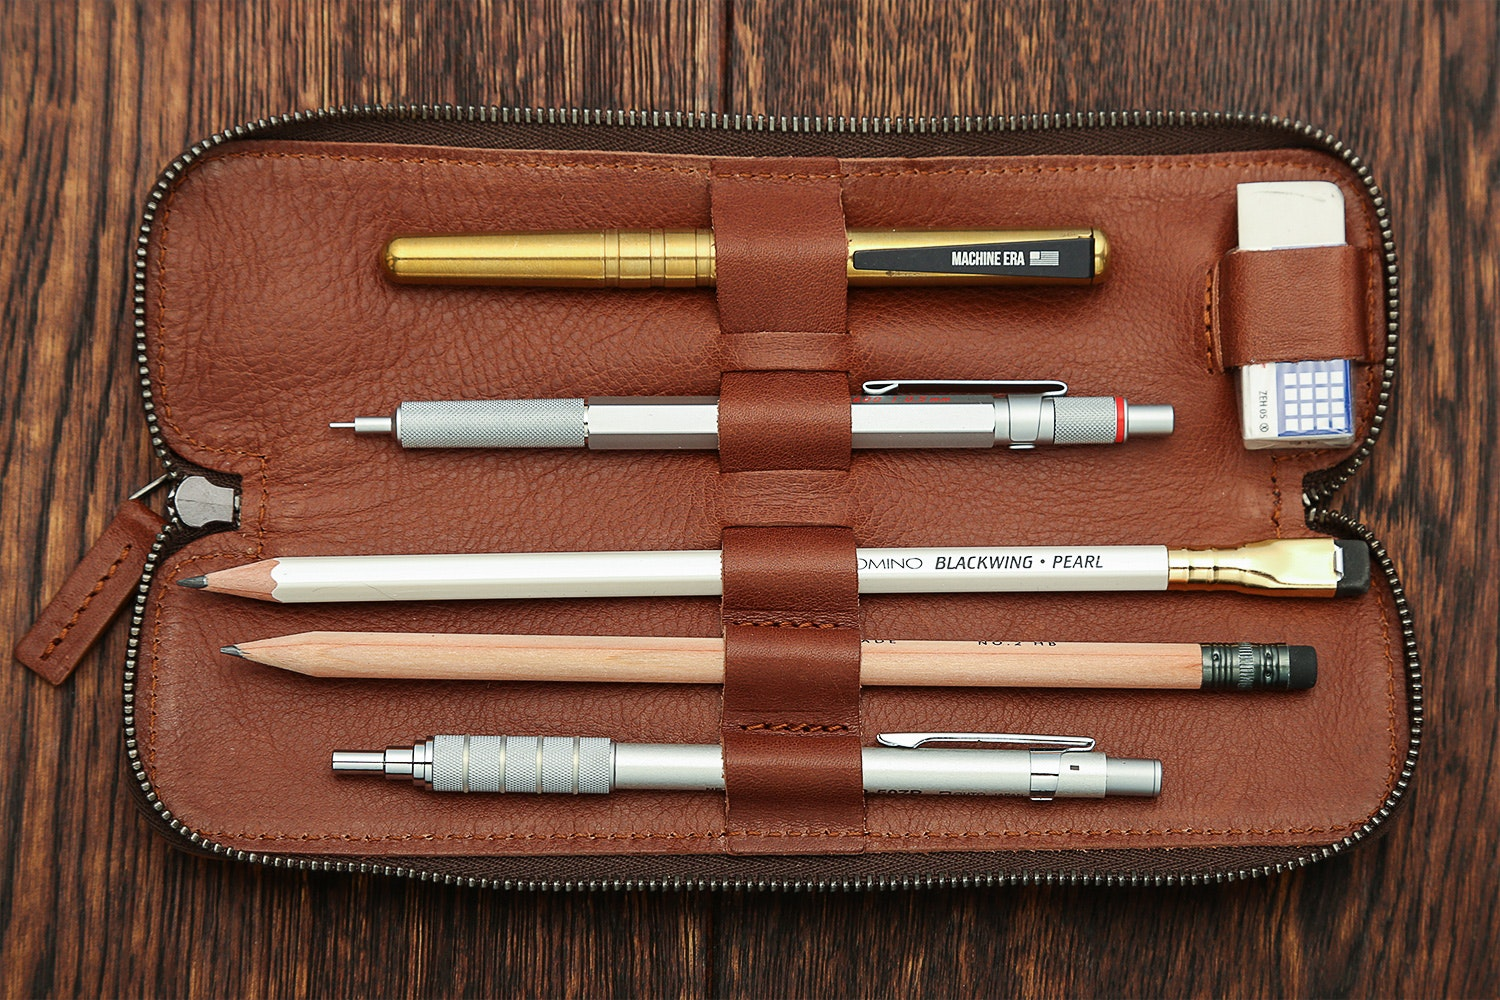 This is Ground Pen & Pencil Case